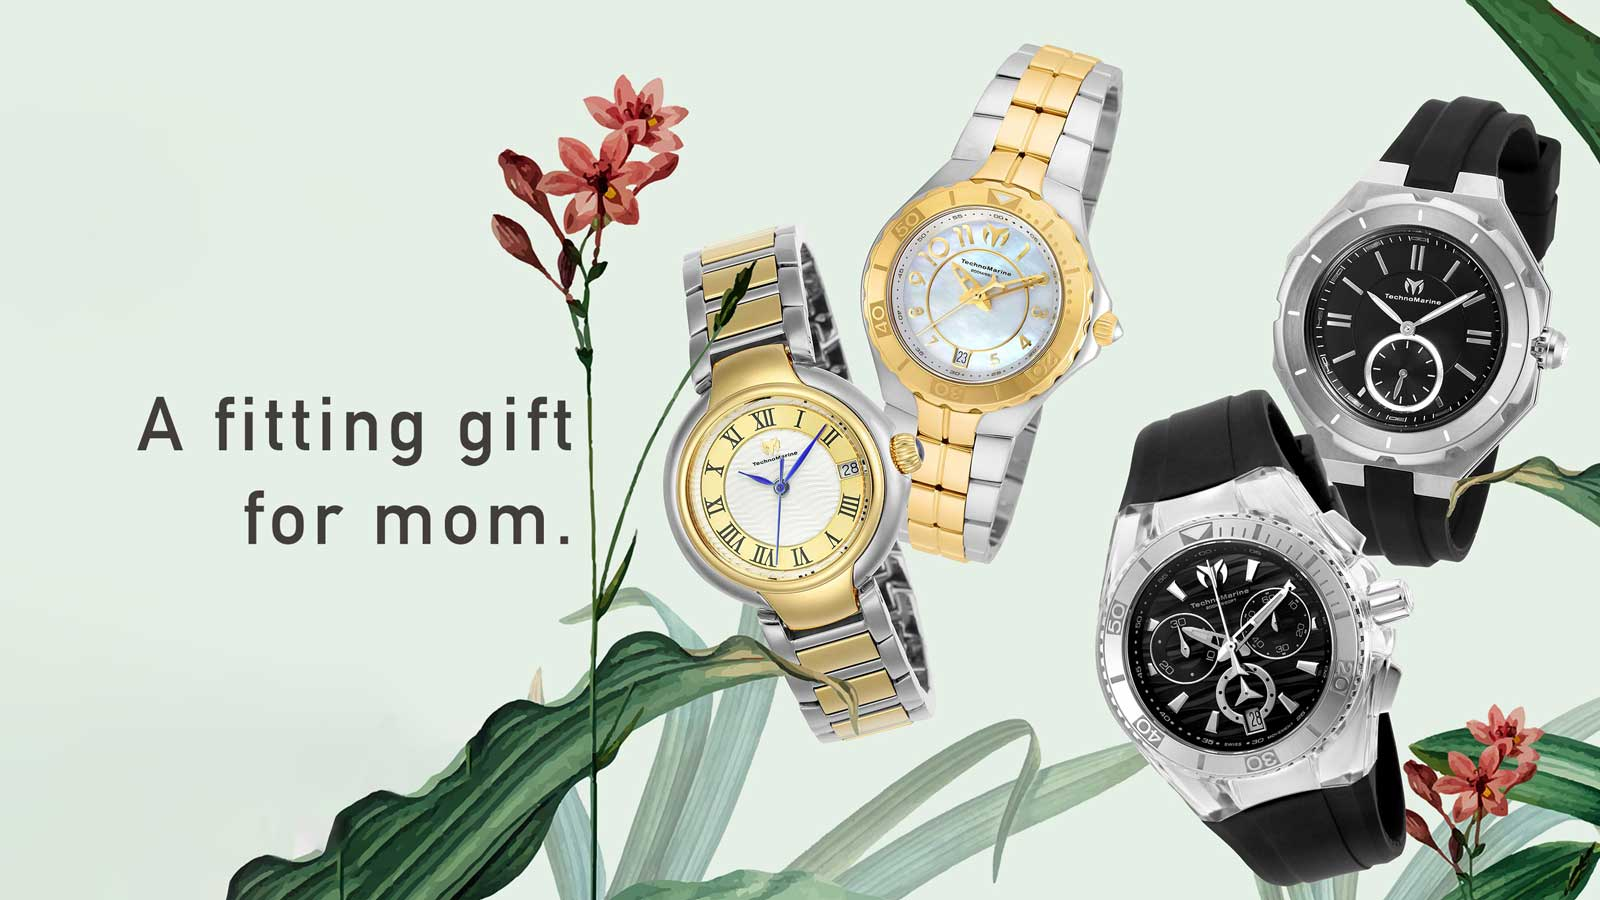 TechnoMarine, a fitting gift for mom